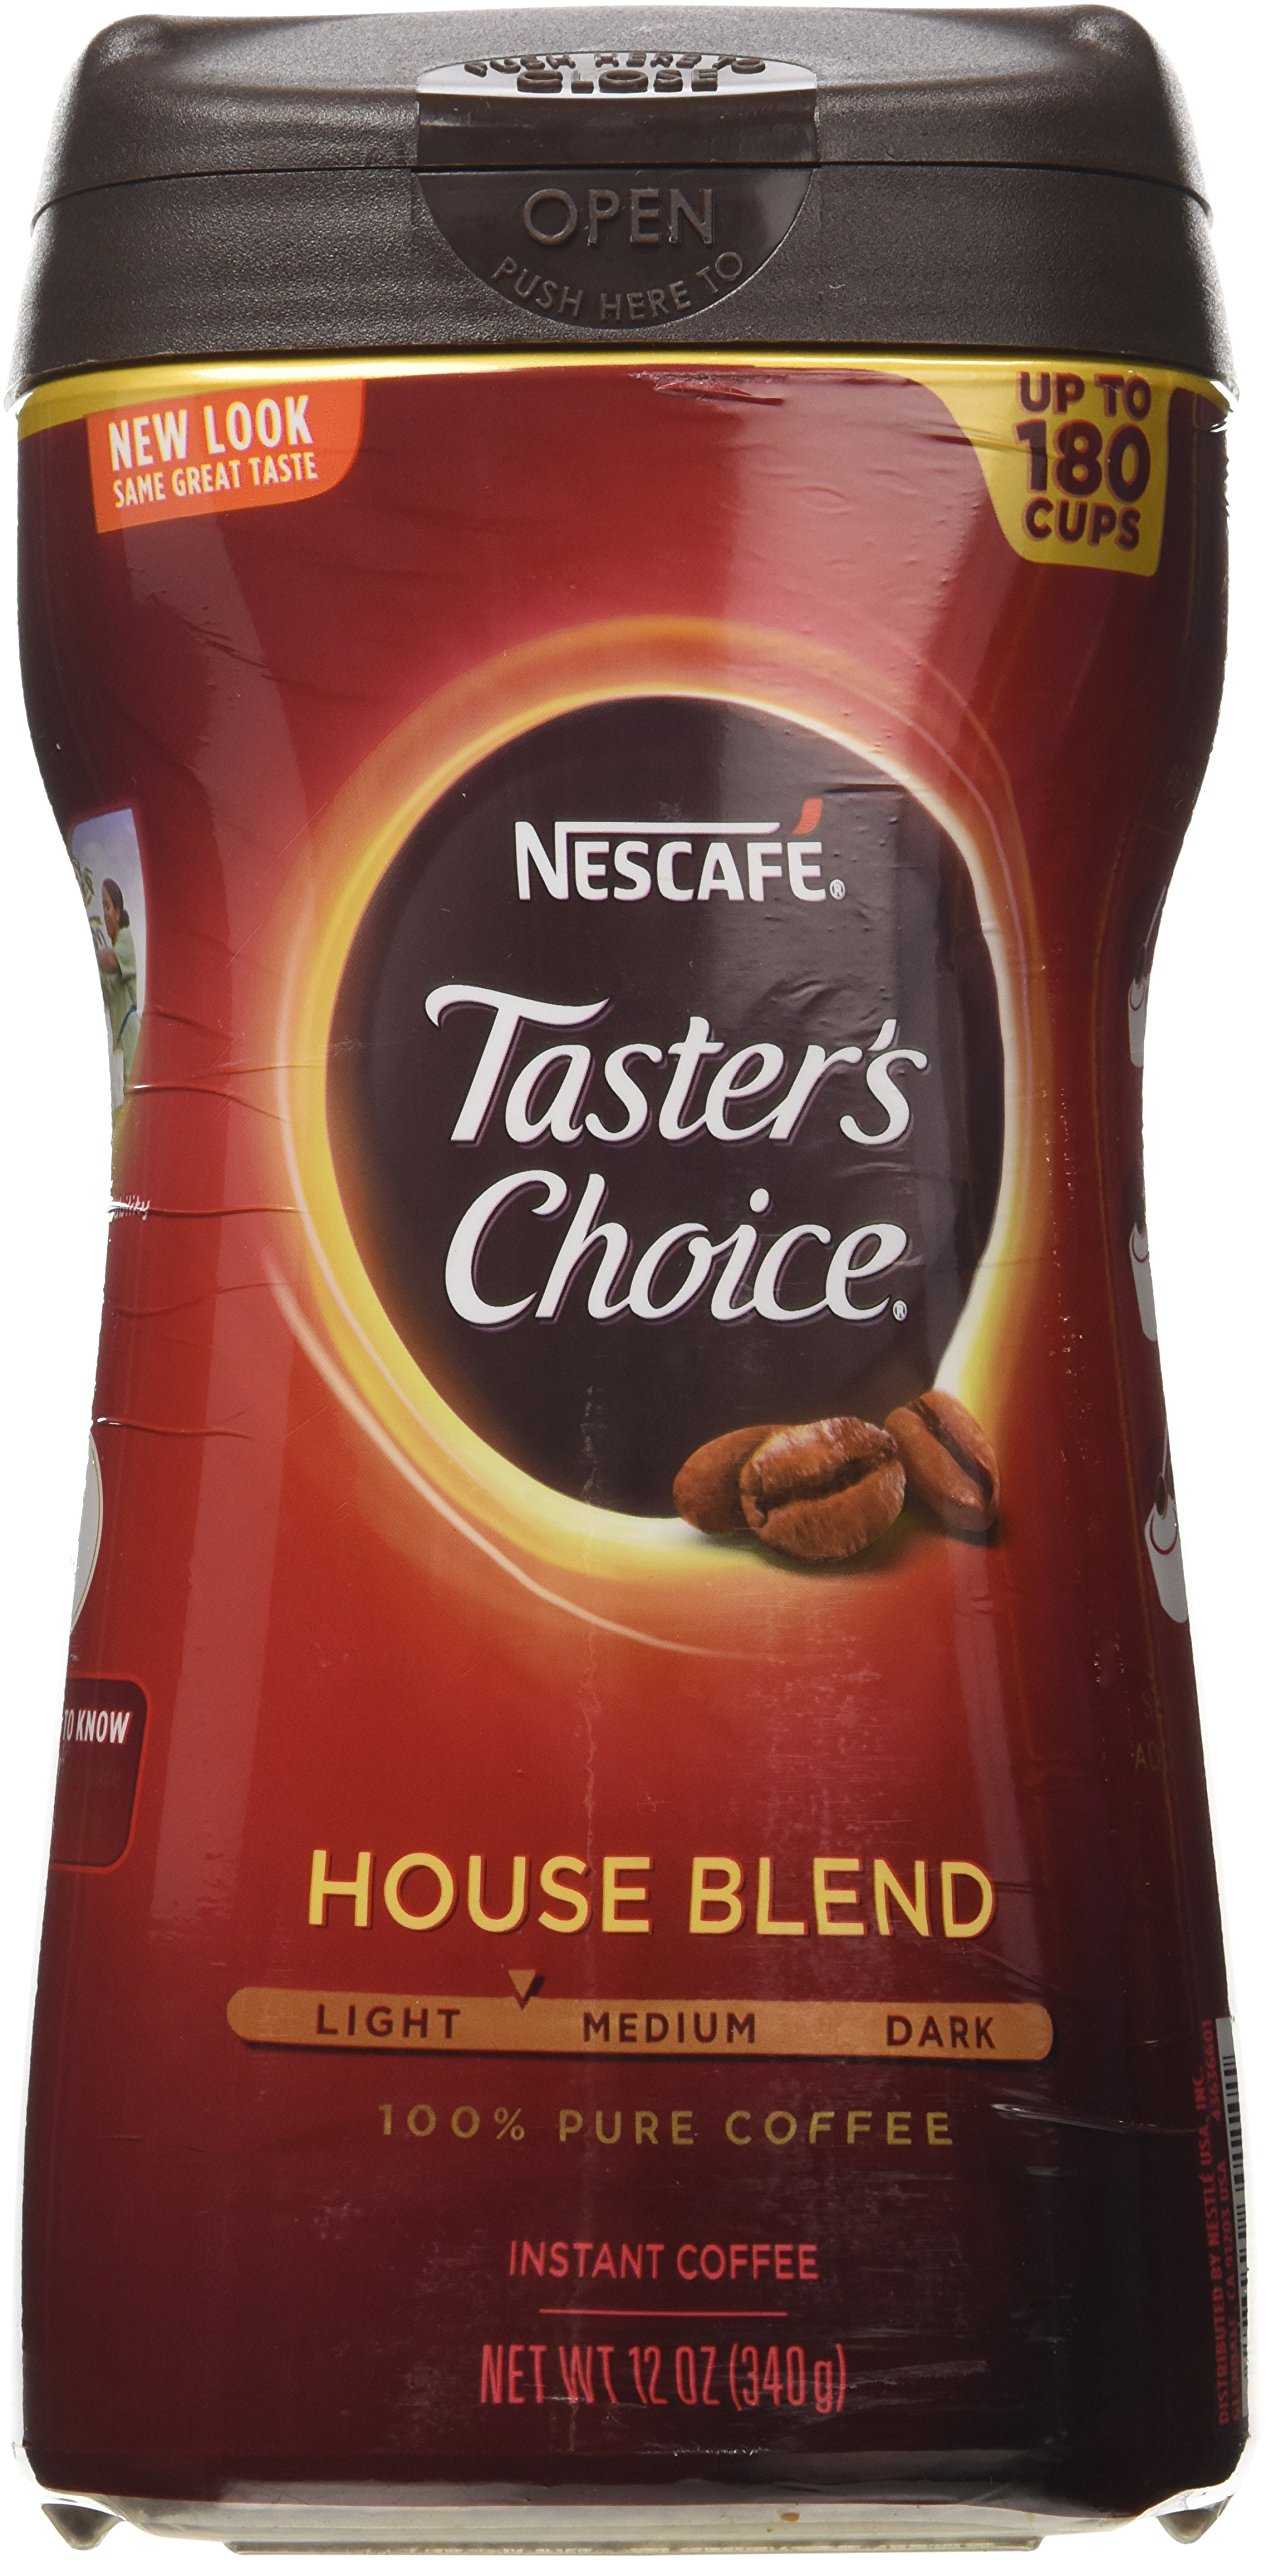 Taster's Choice Original Gourmet Instant Coffee 12Oz ''3 Pack'' by Nescafe Taster's Choice